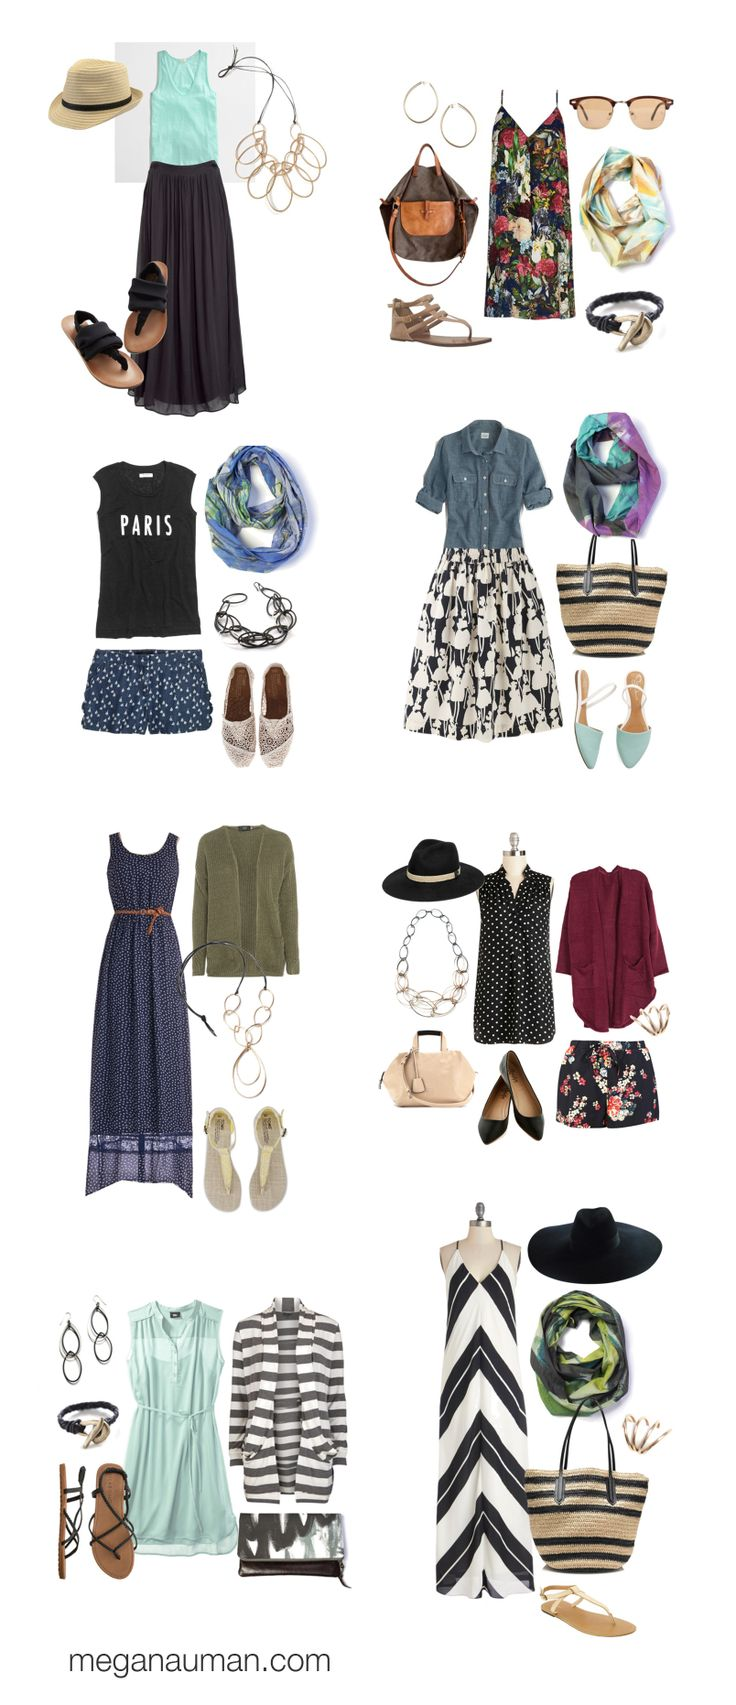 what to wear to a summer picnic: 8 outfit ideas to try // via megan auman